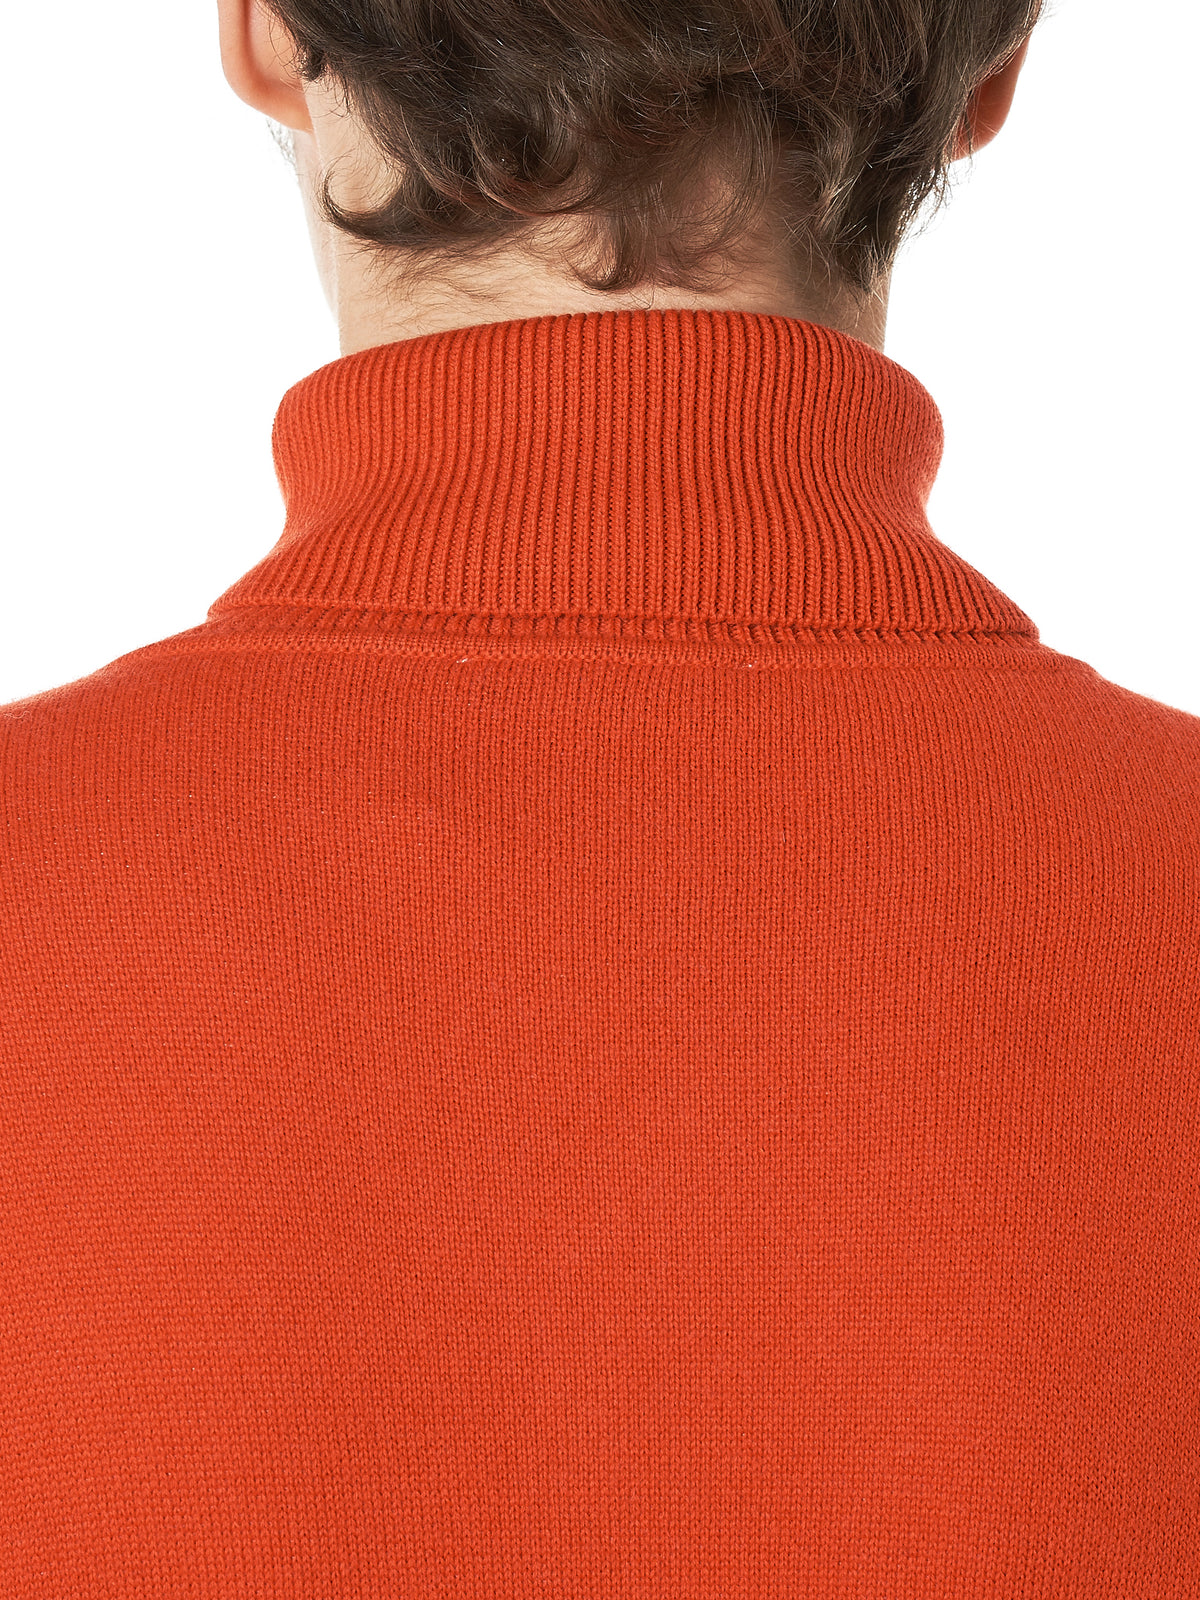 Gosha Rubchinskiy Turtleneck Sweater - Hlorenzo Back Detail